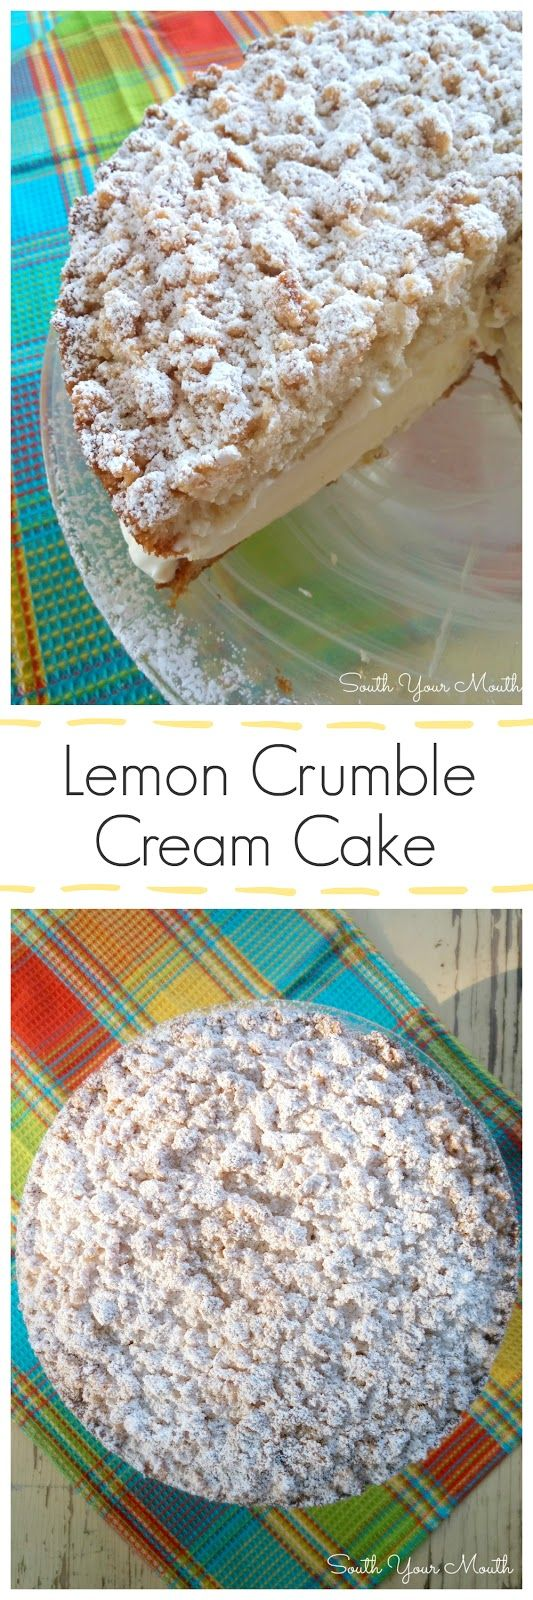 lemon crumble cream cake Collage